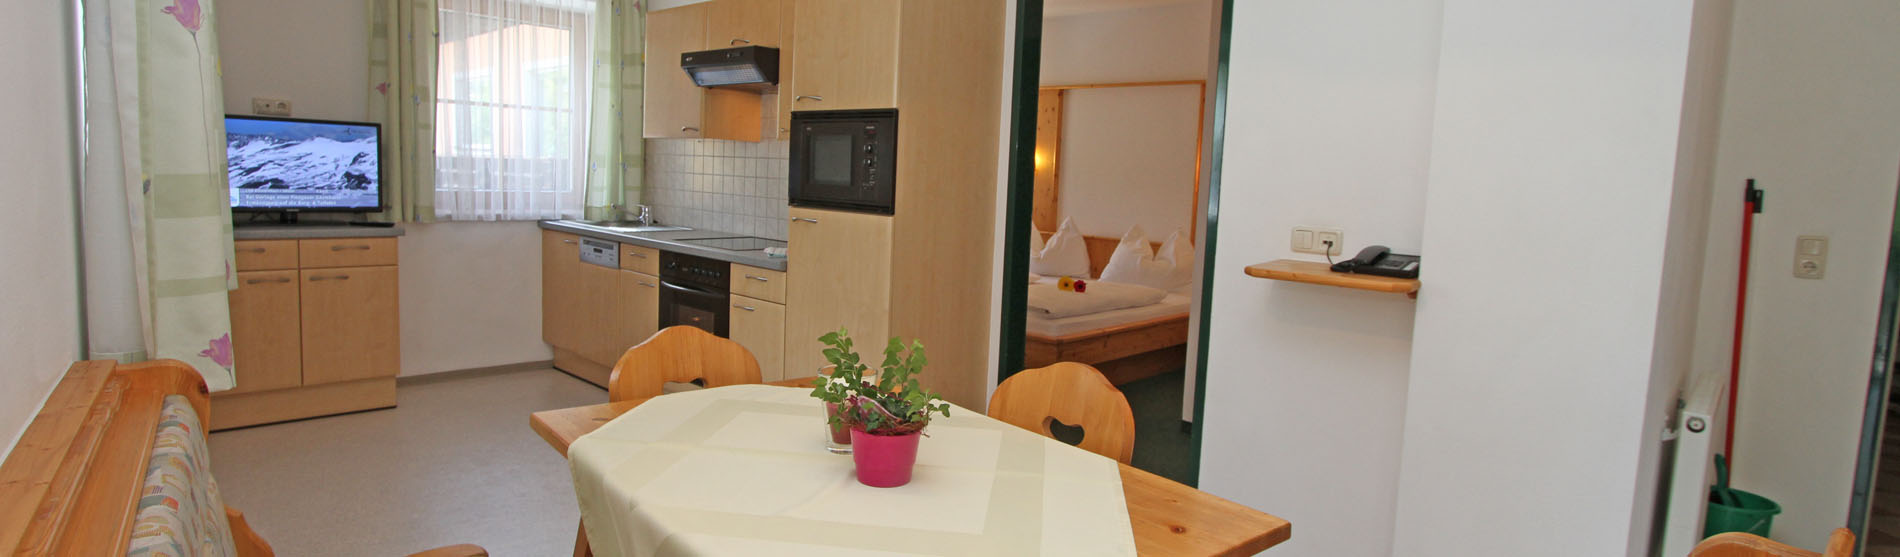 Apartments in Zell am See - Simply relax.